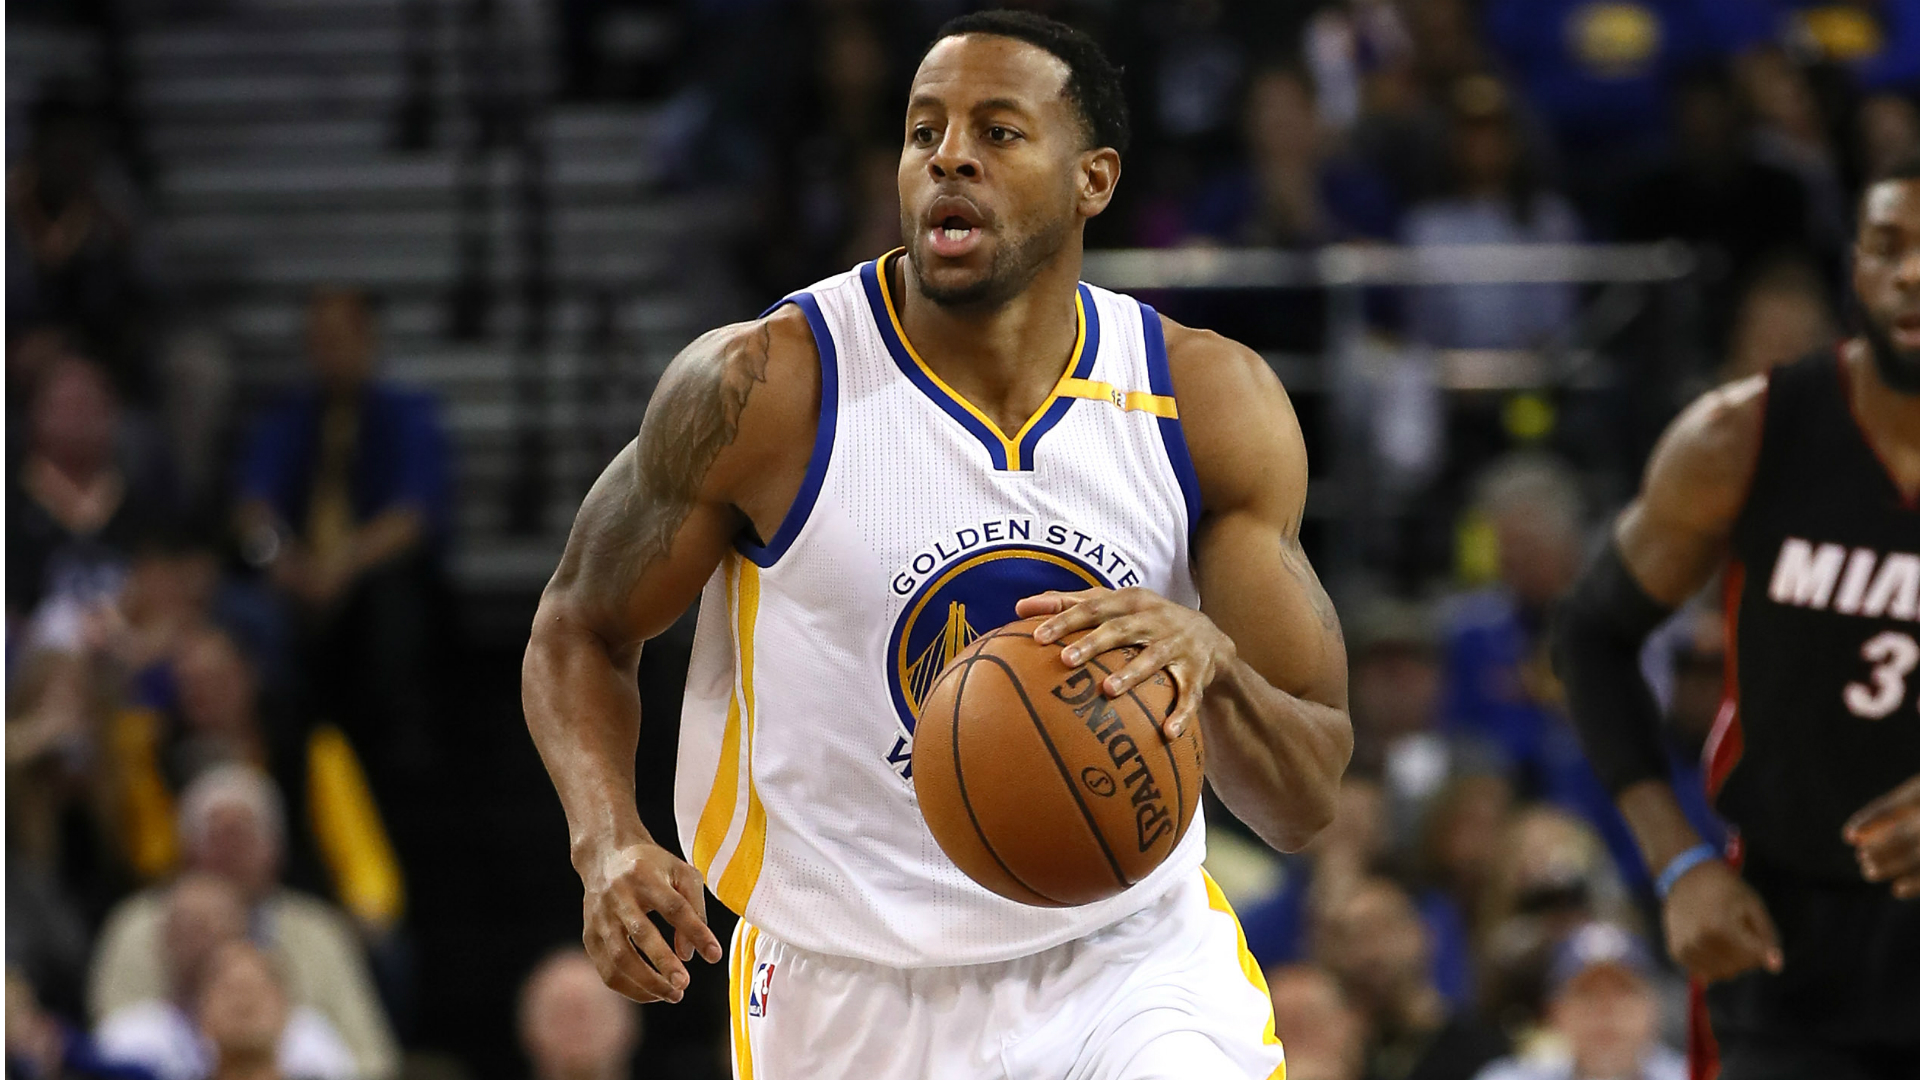 NBA playoffs 2018: Warriors' Andre Iguodala doubtful for Game 4